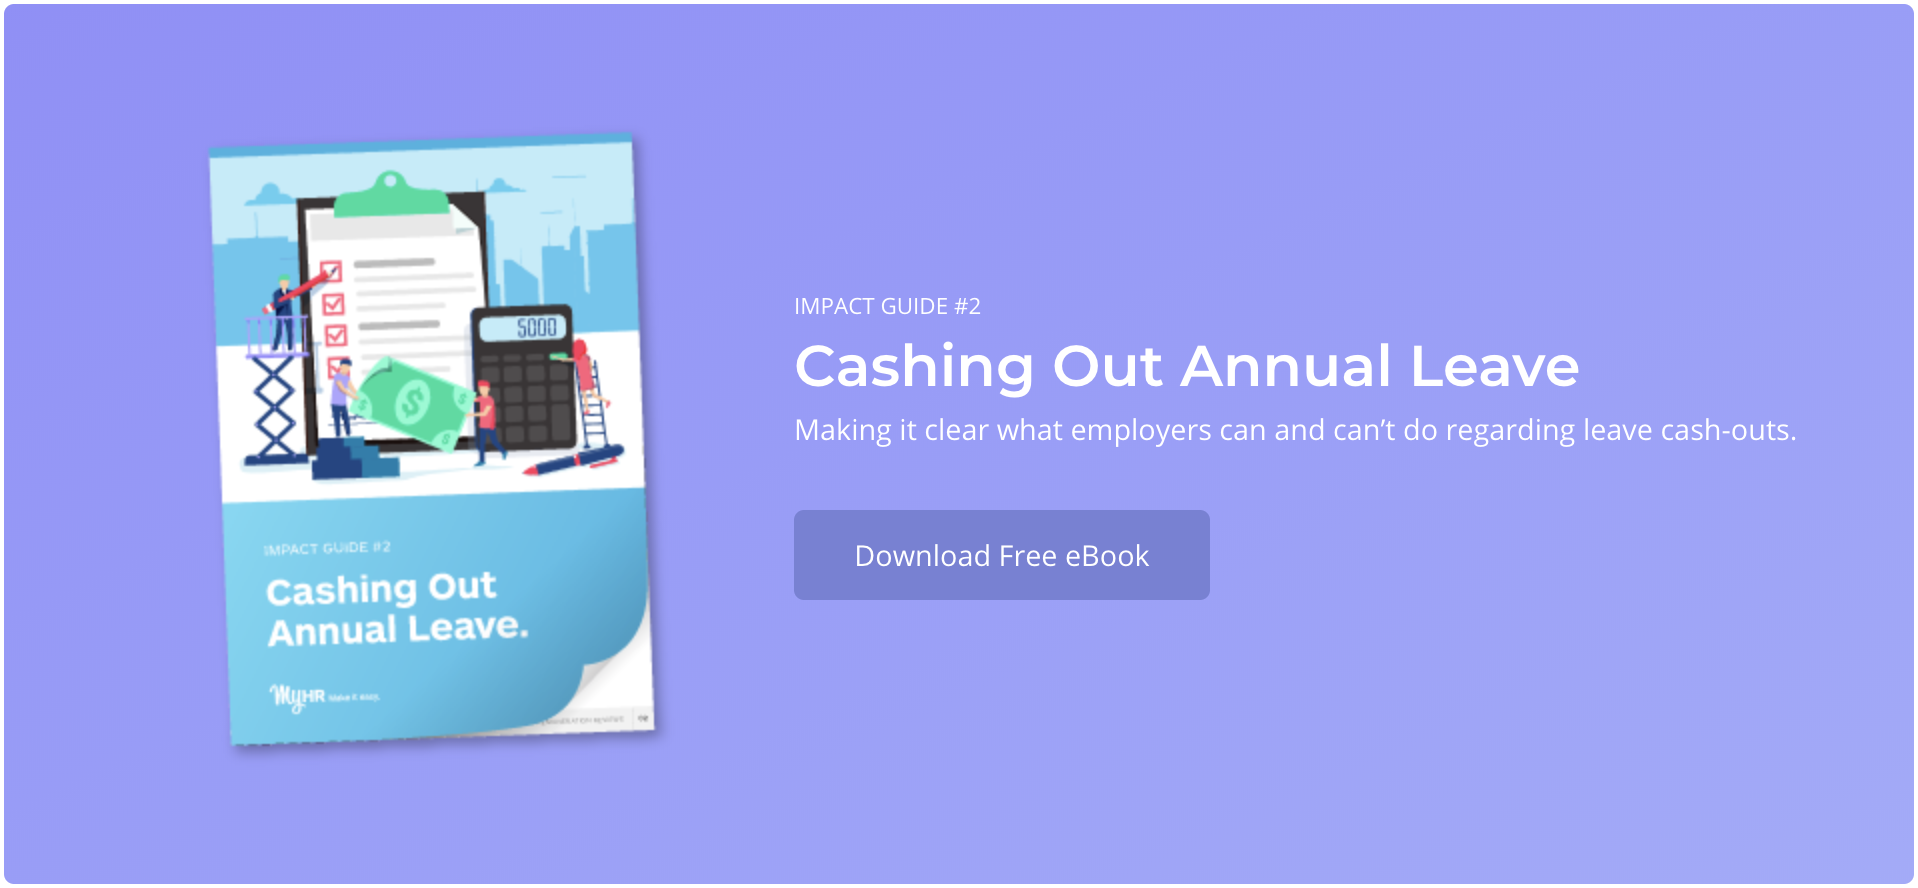 Cashing Out Annual Leave | FlexiTime Blog Image